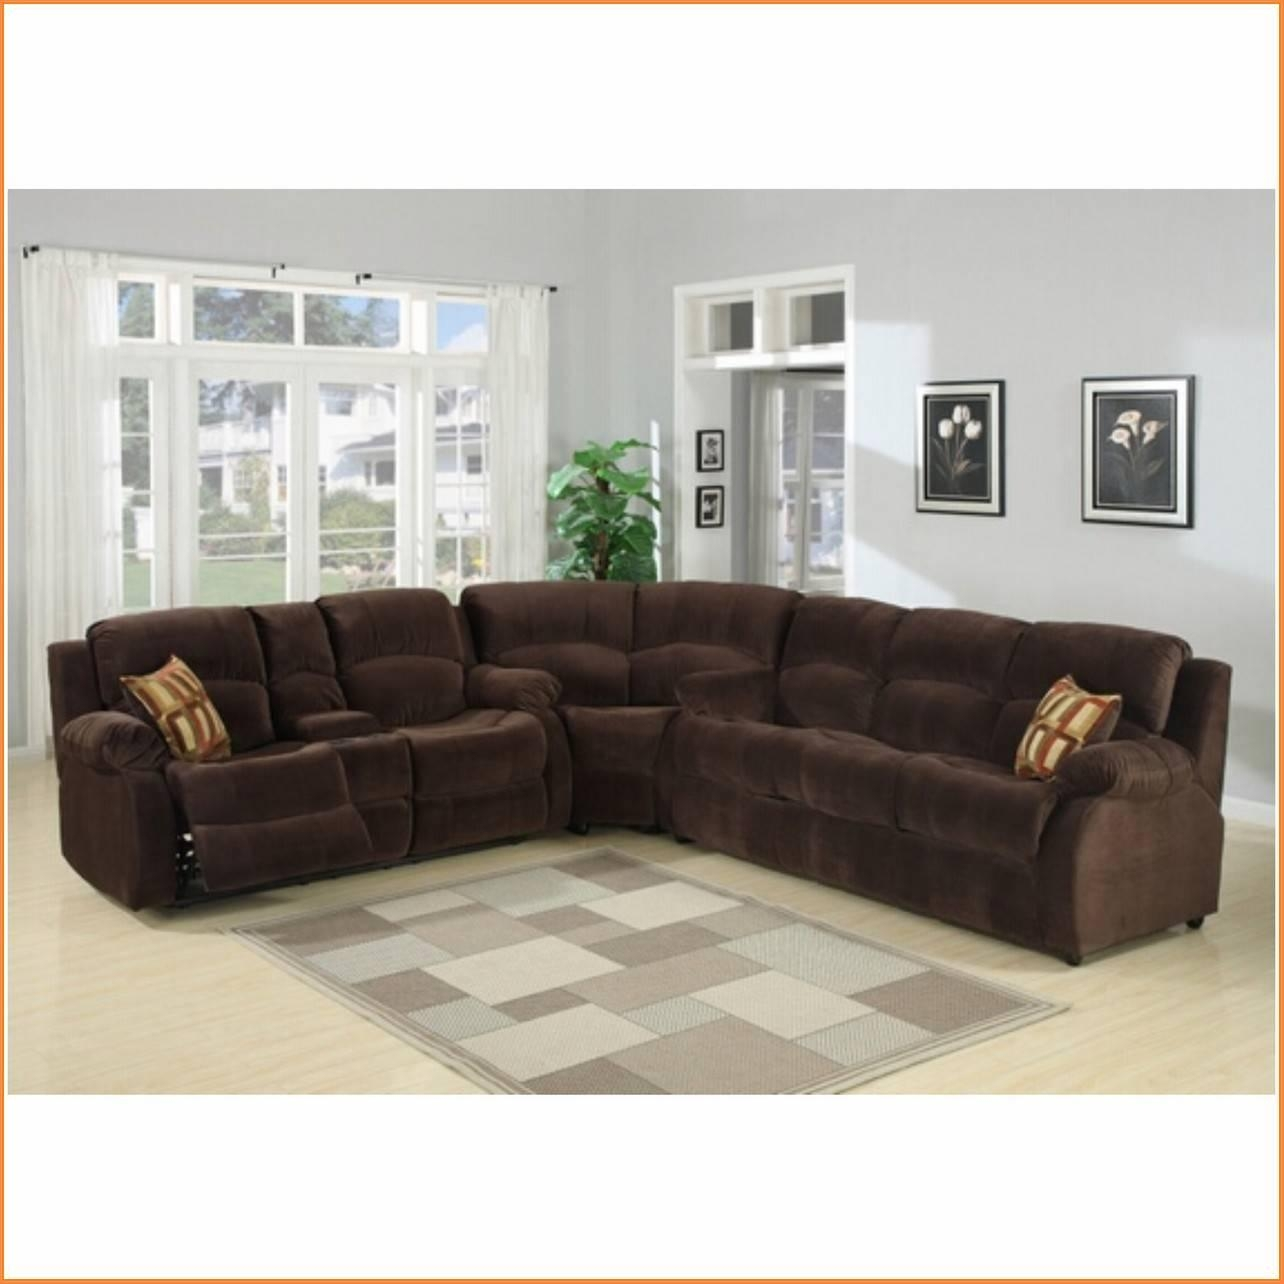 Sofa : Queen Sofa Sleeper Sectional Microfiber Amazing Home Design Inside Queen Sofa Sleeper Sectional Microfiber (View 6 of 20)